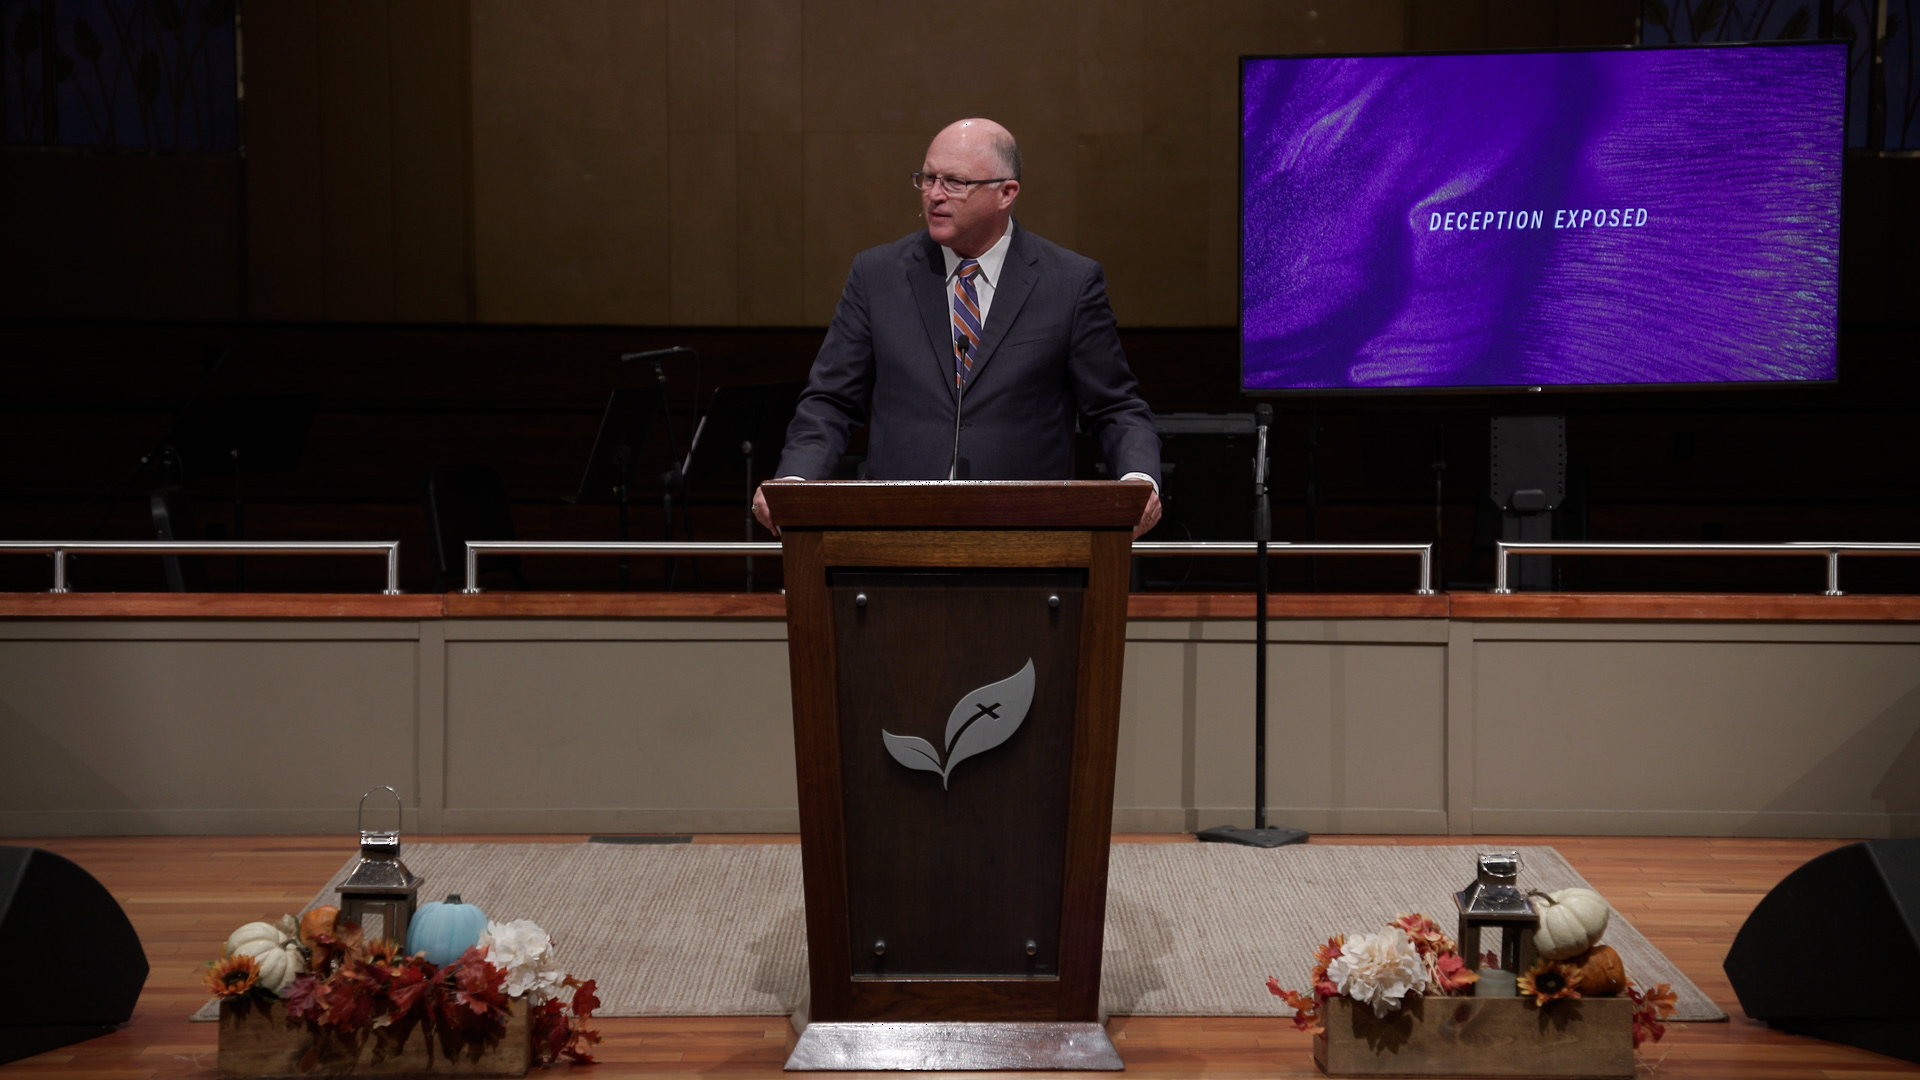 Pastor Paul Chappell: Evidences of Affection